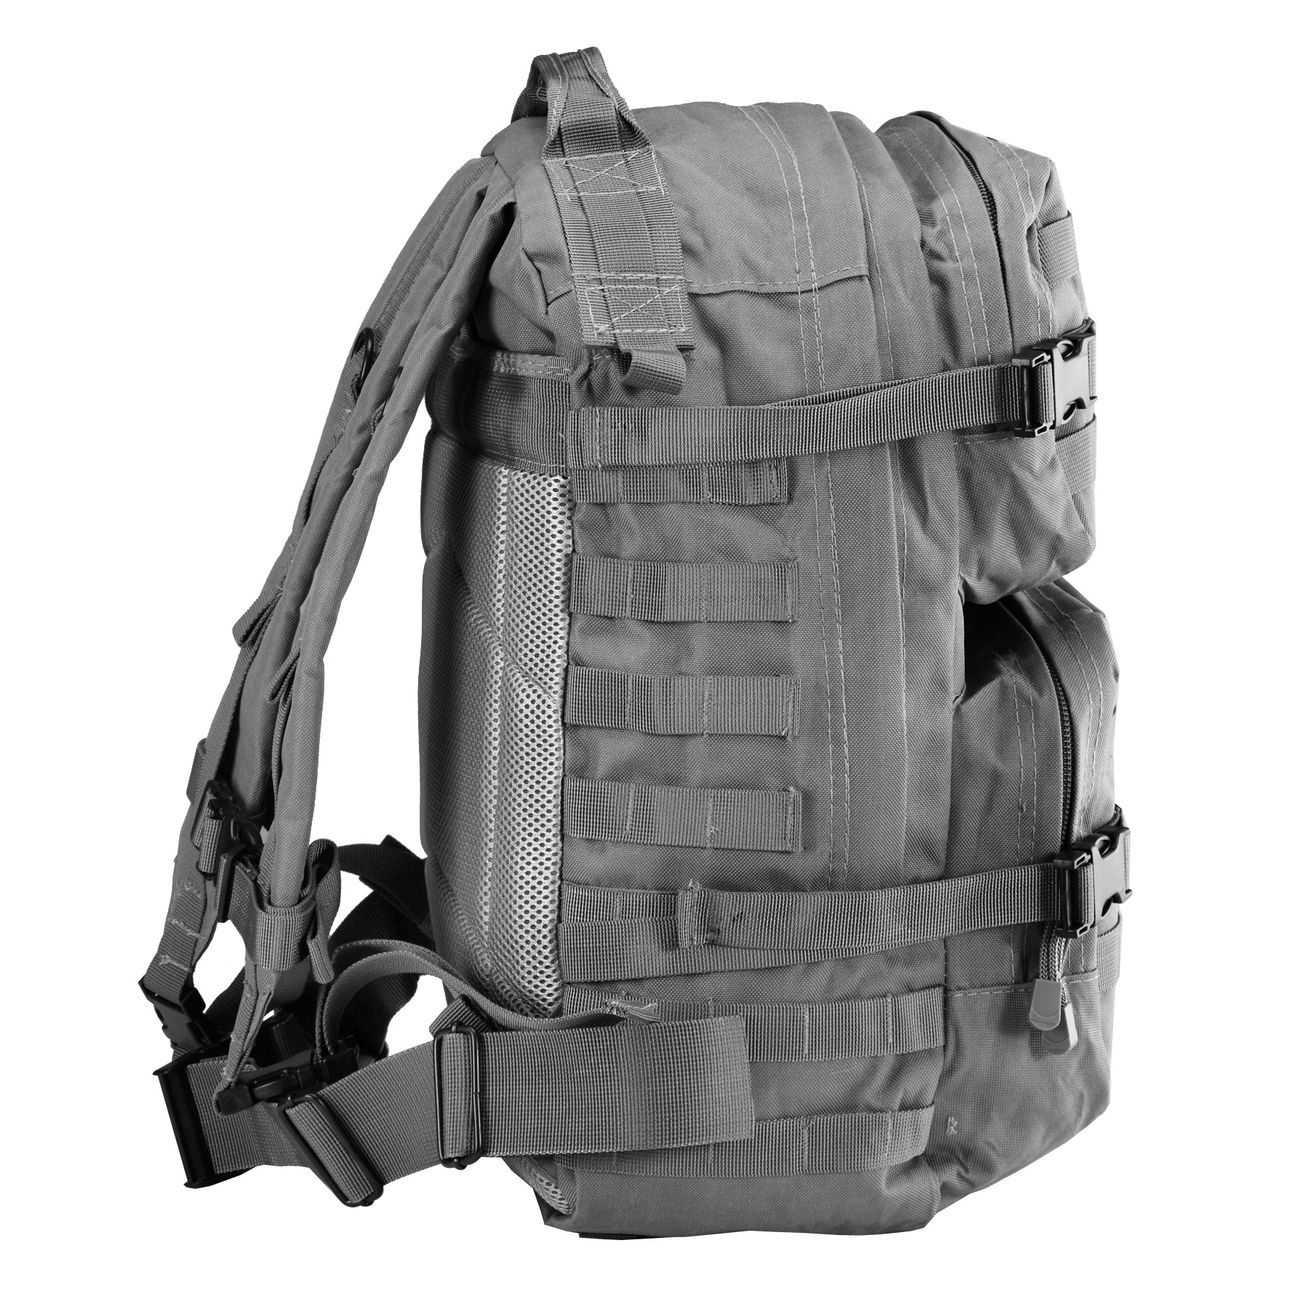 MFH Rucksack US Assault II foliage 2